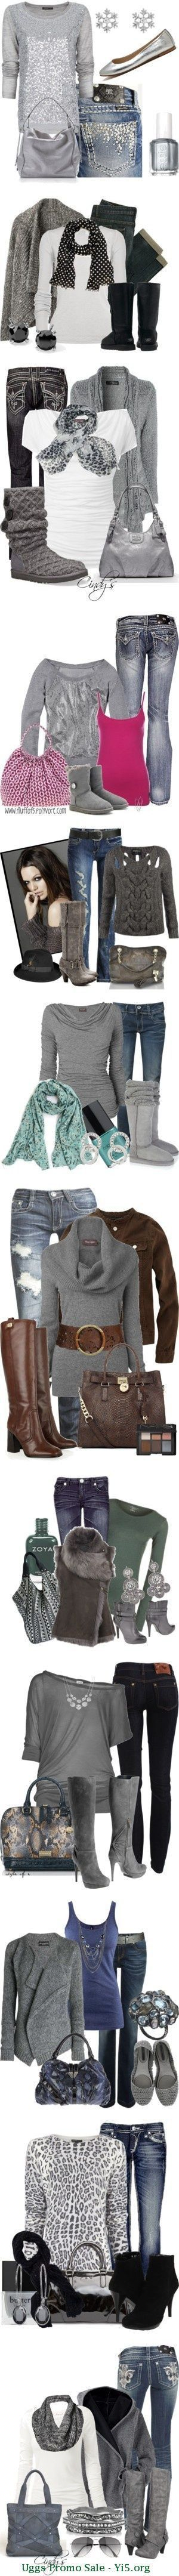 These UGG outfits are so cute and versatile! Cyber Monday Ugg Boots #uggs #ugg #boots #cyberweek